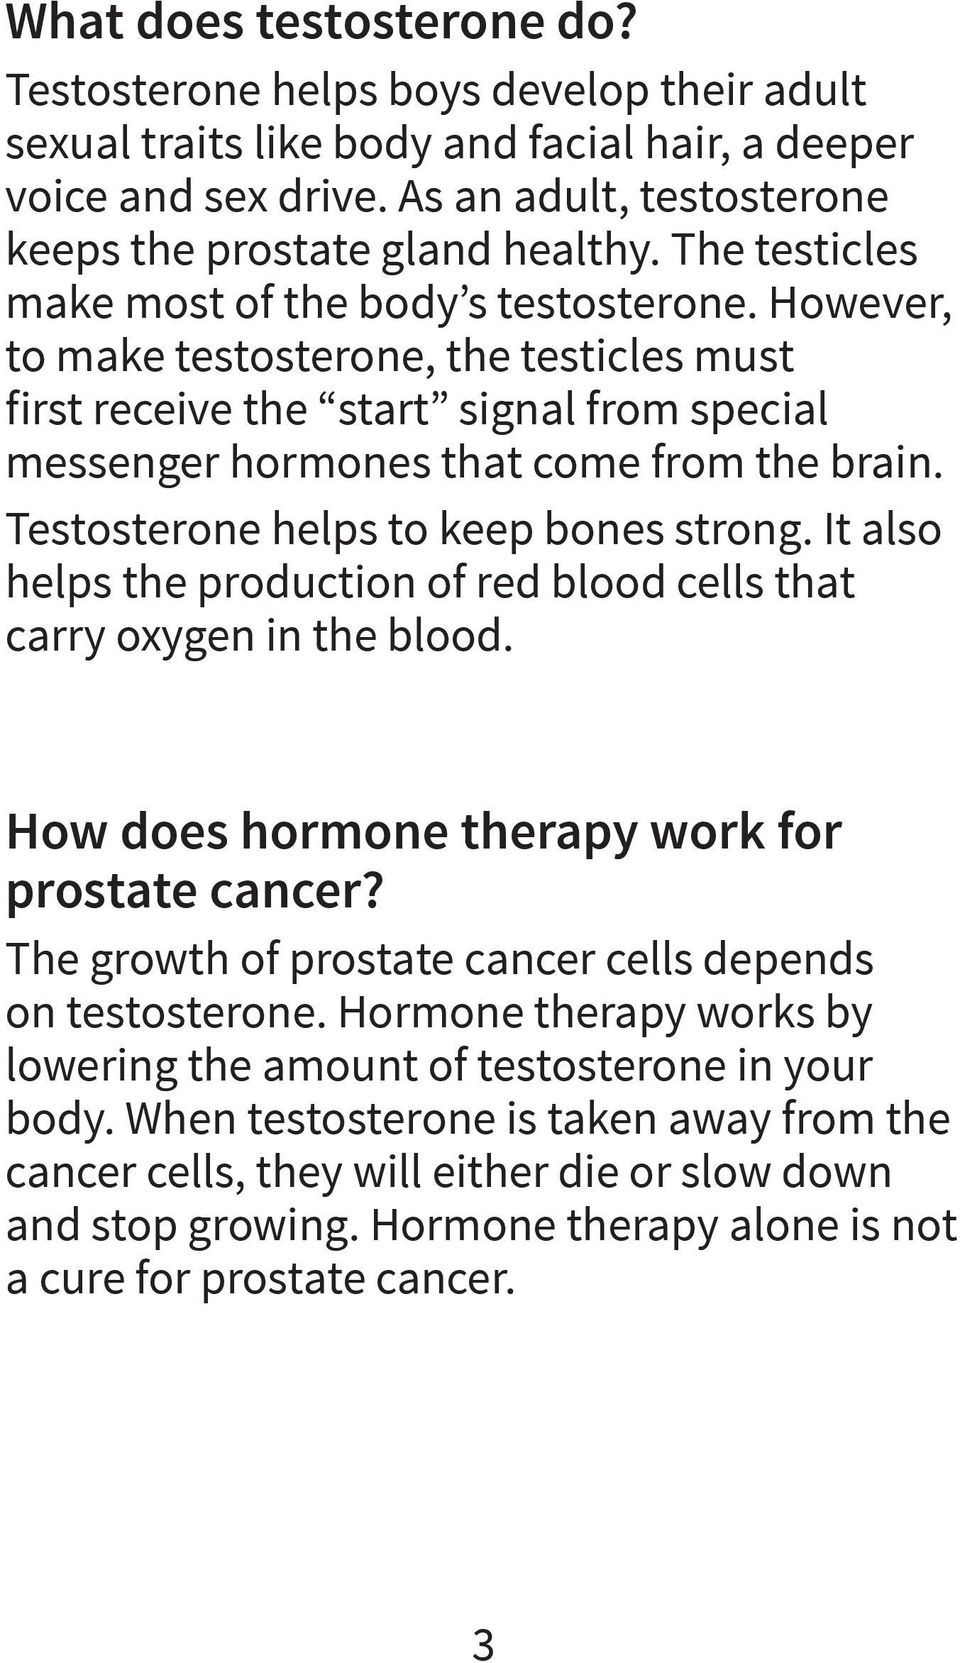 However, to make testosterone, the testicles must first receive the start signal from special messenger hormones that come from the brain. Testosterone helps to keep bones strong.